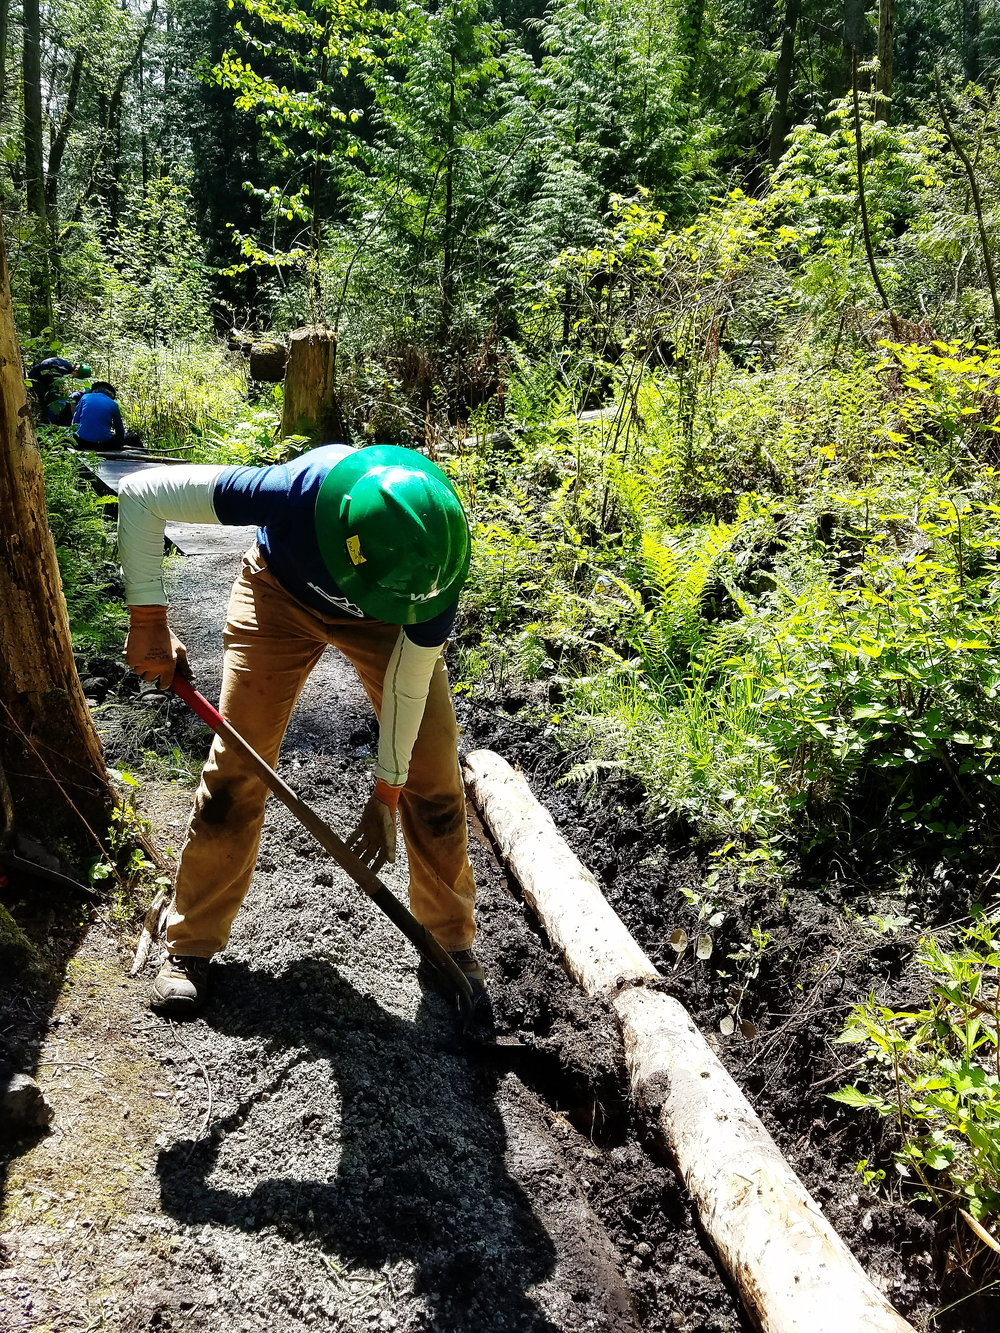 One of my new friends widening a trench to align one of three half-turnpikes to improve a particularly muddy stretch of trail